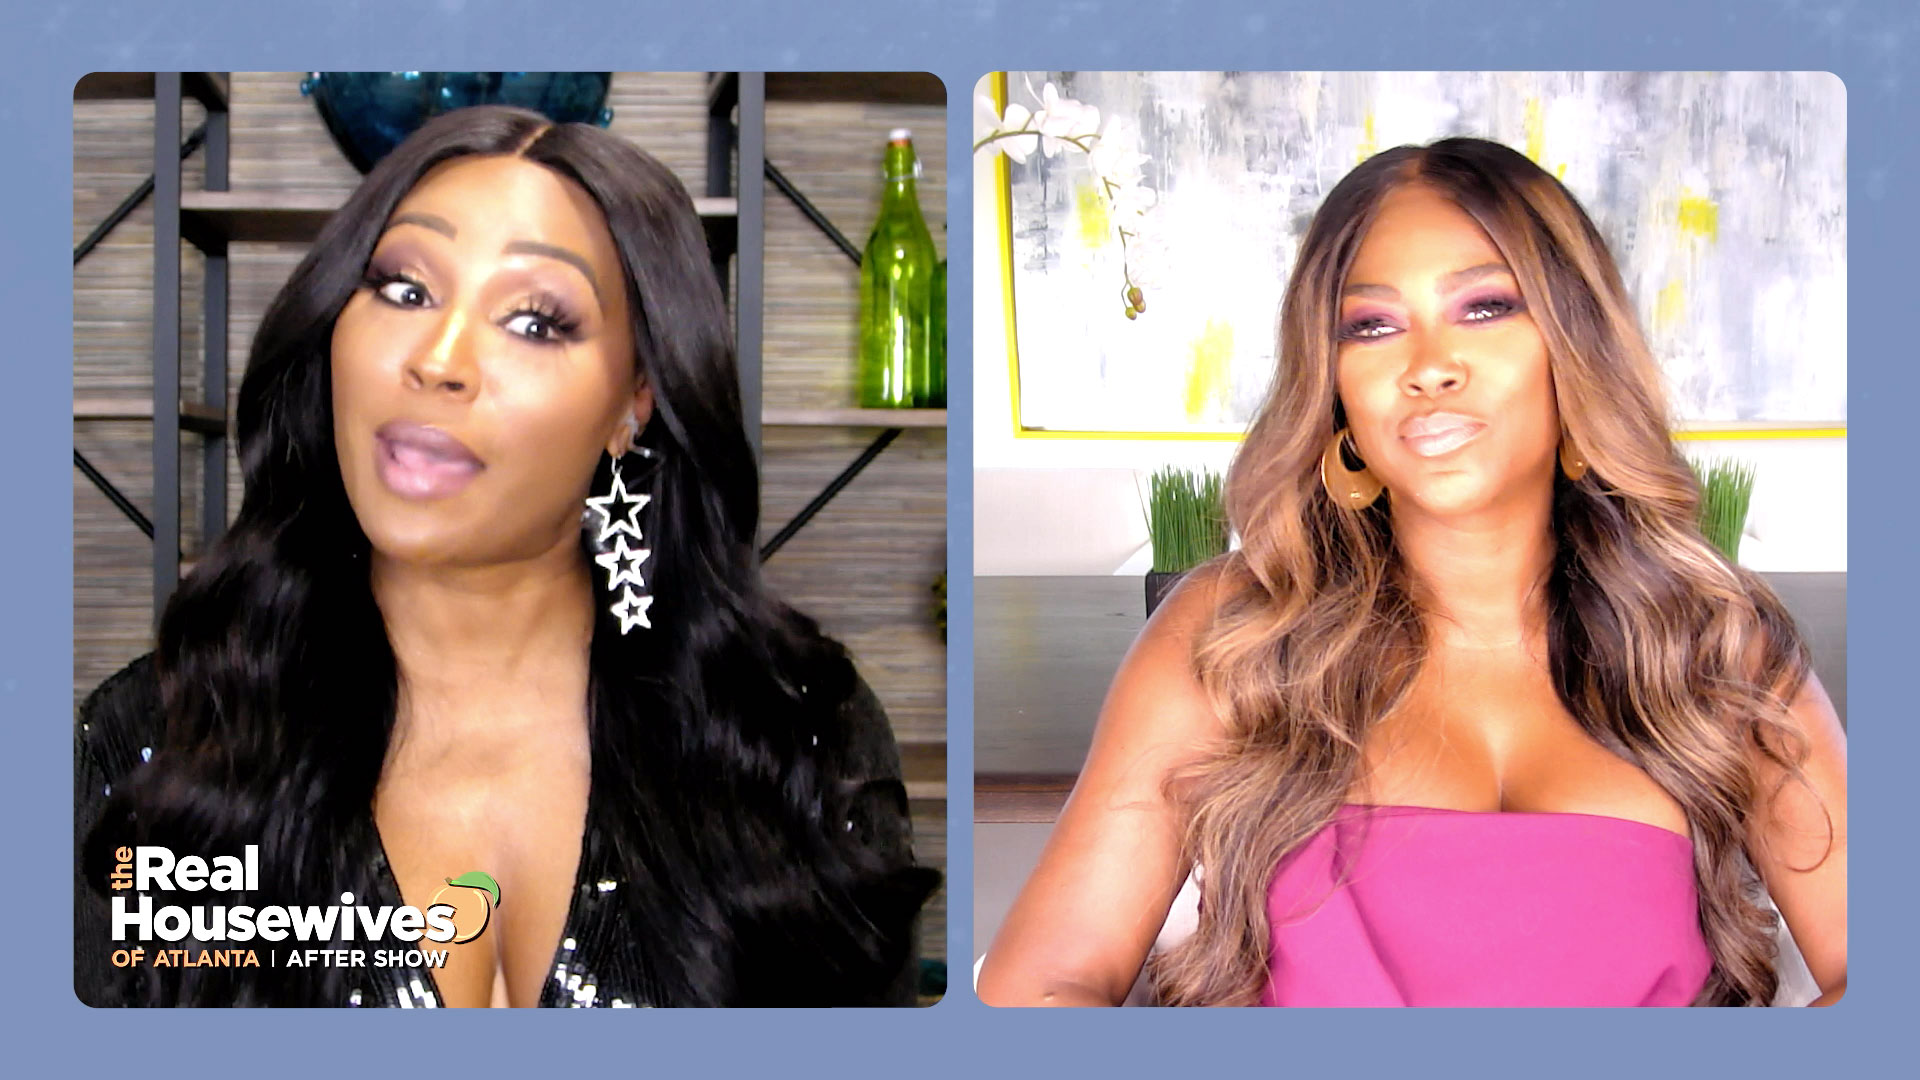 210417 4346438 Cynthia Bailey Calls The Behavior At Her Hol